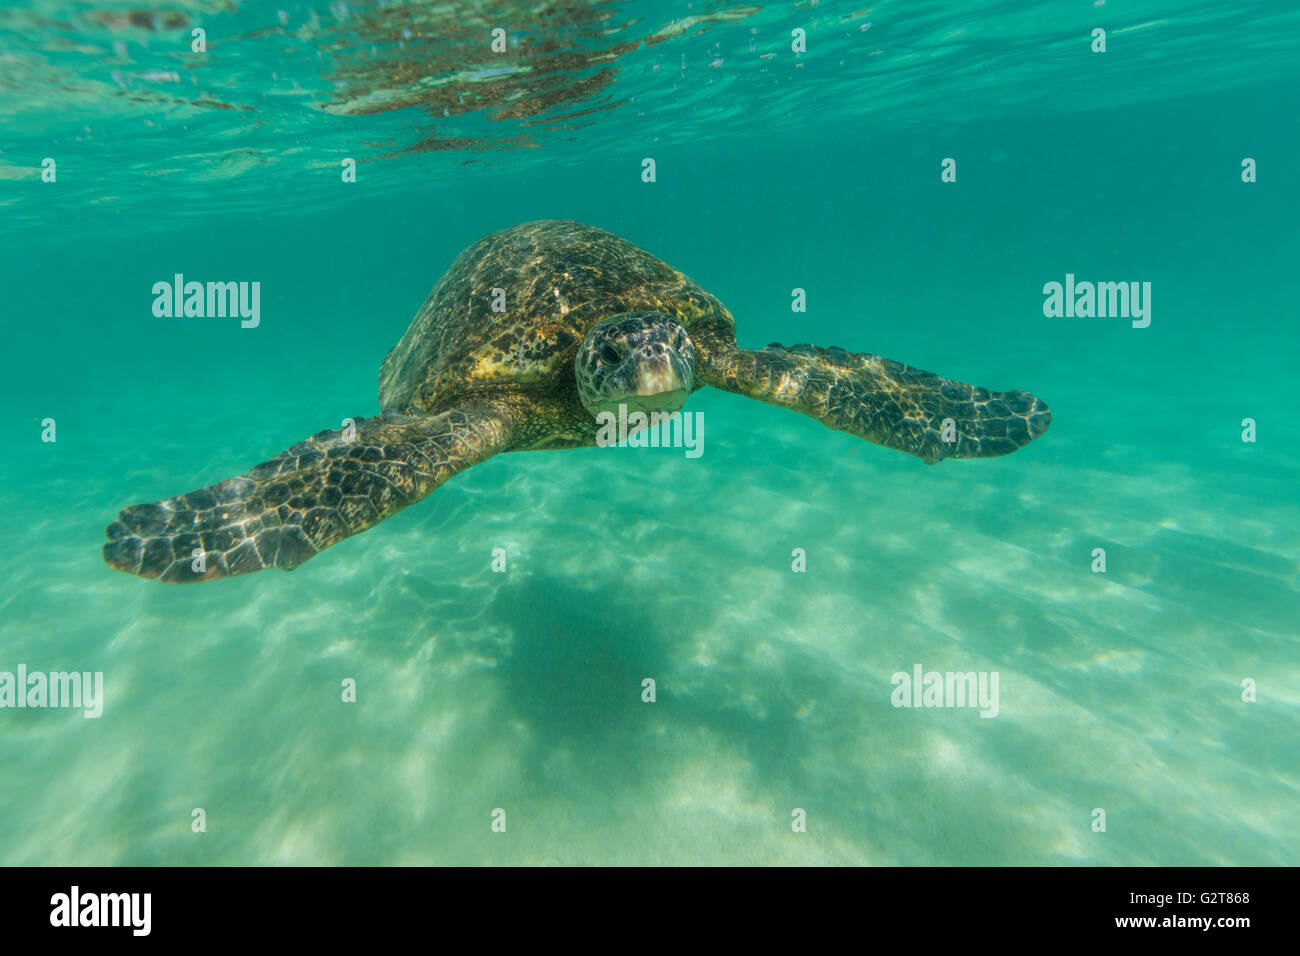 A underwater view of a sea turtle swimming in shallow ocean waters. - Stock Image